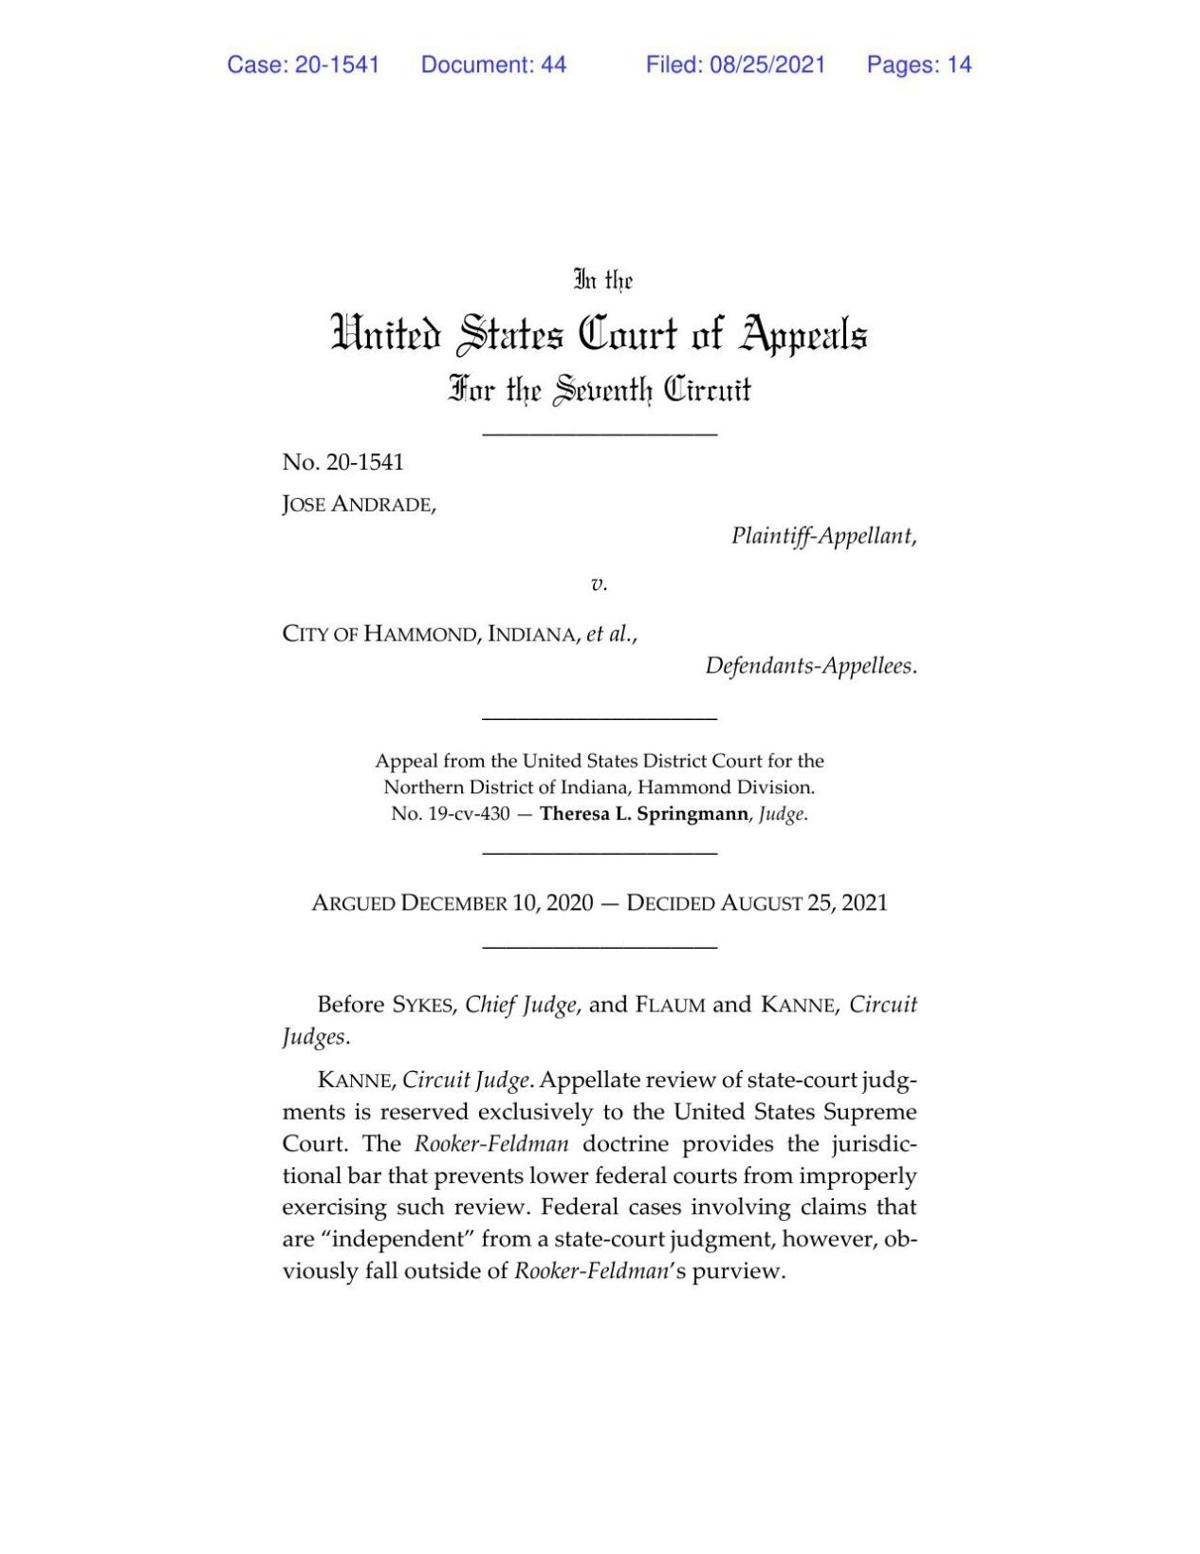 Andrade v. Hammond ruling of 7th U.S. Circuit Court of Appeals